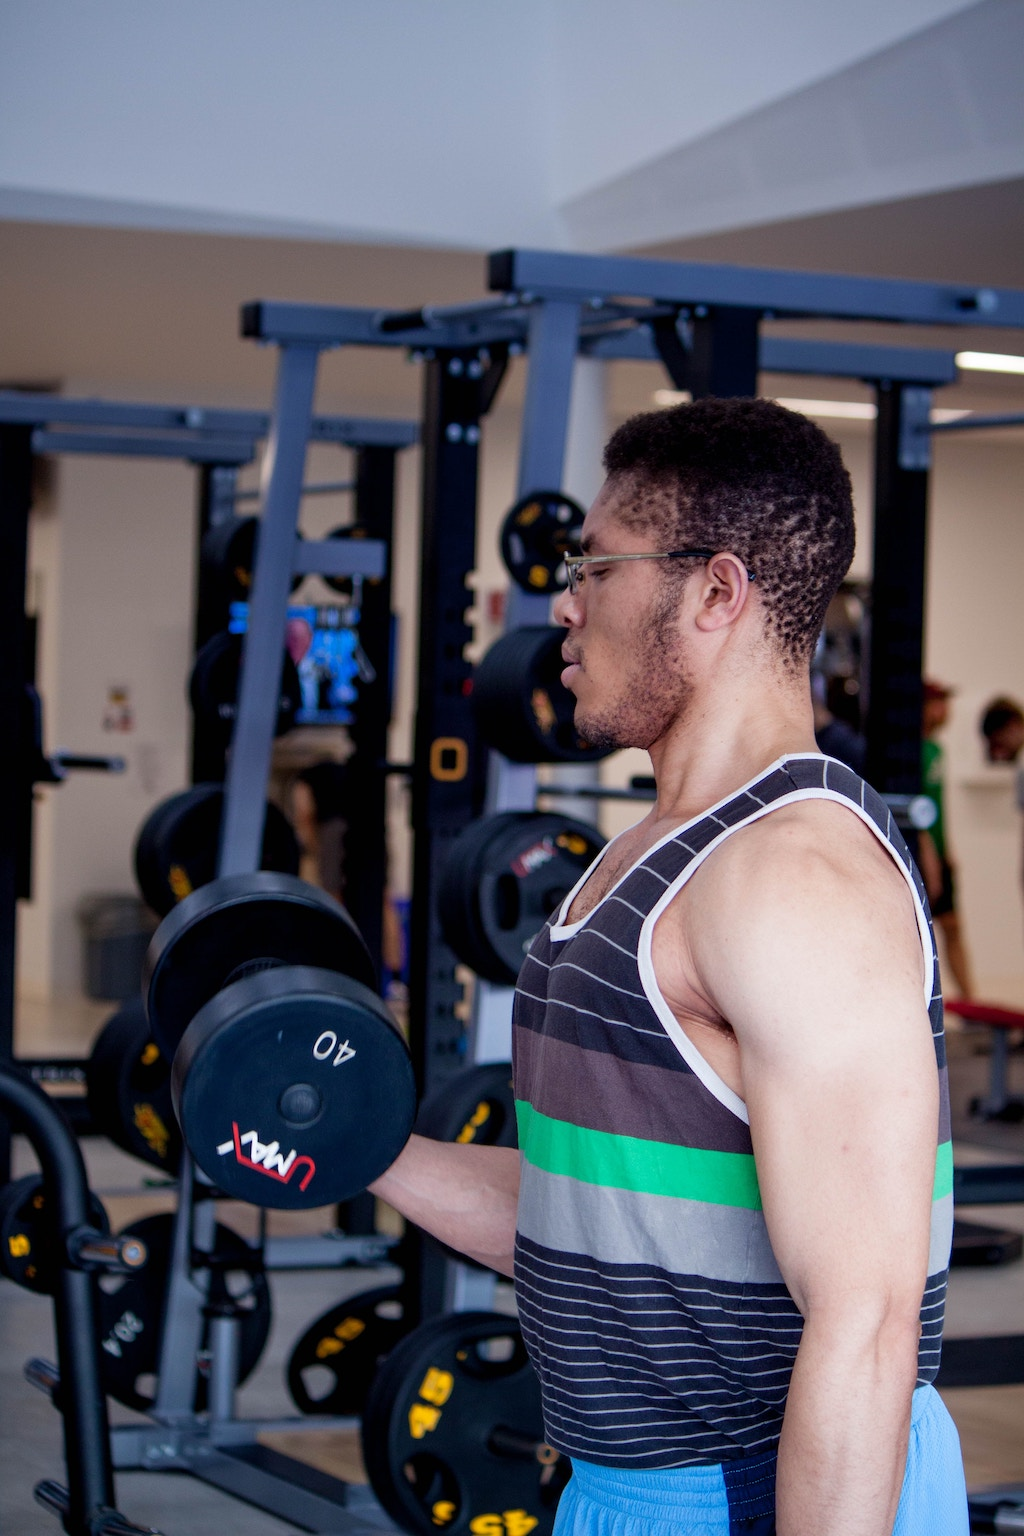 A man lifting a 40 pound dumbbell in a gym setting.